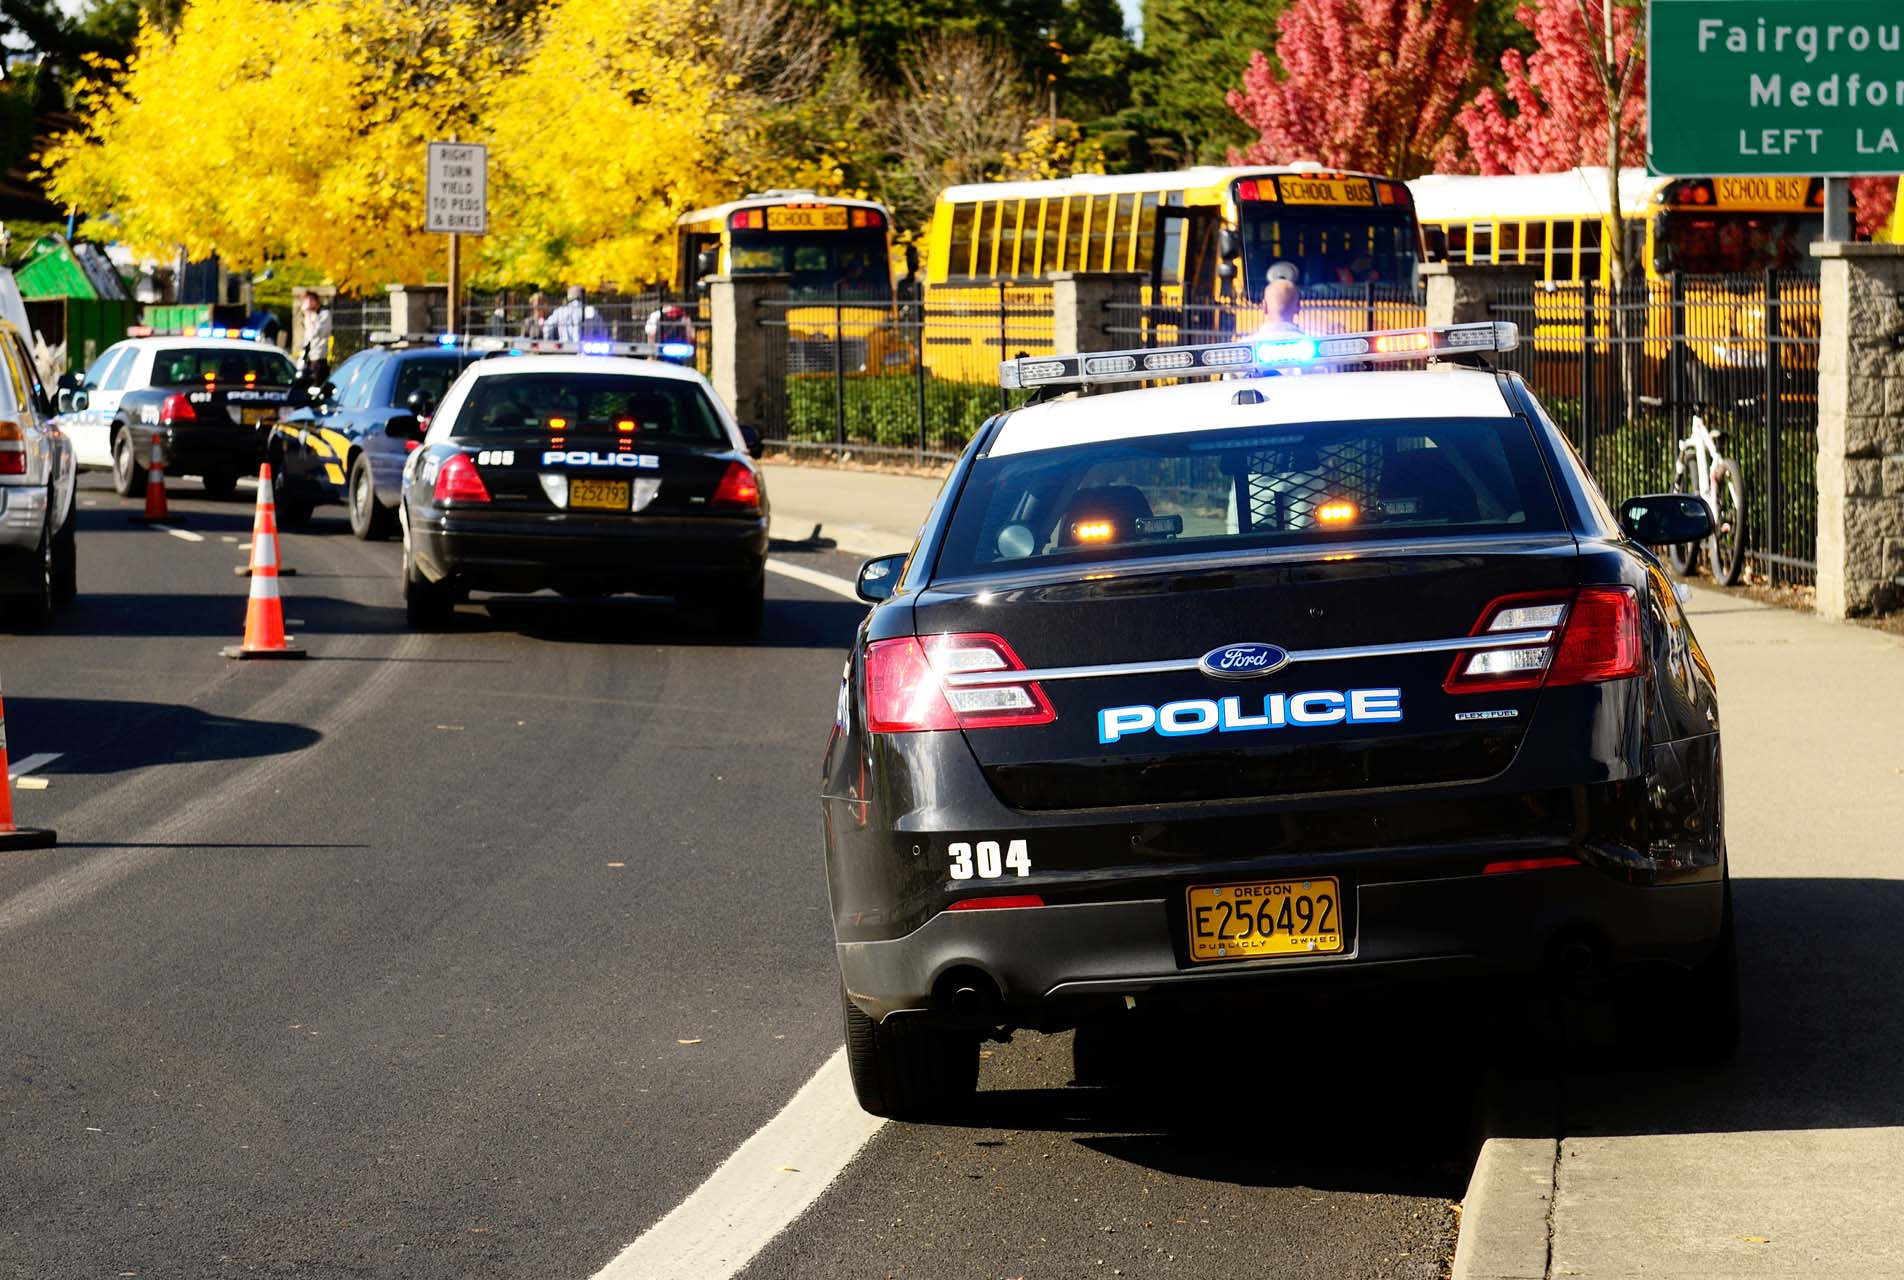 Roseburg Oregon - October 16, 2012: Police cars and school buses at an accident scene at the entrance of the High School loading zone.